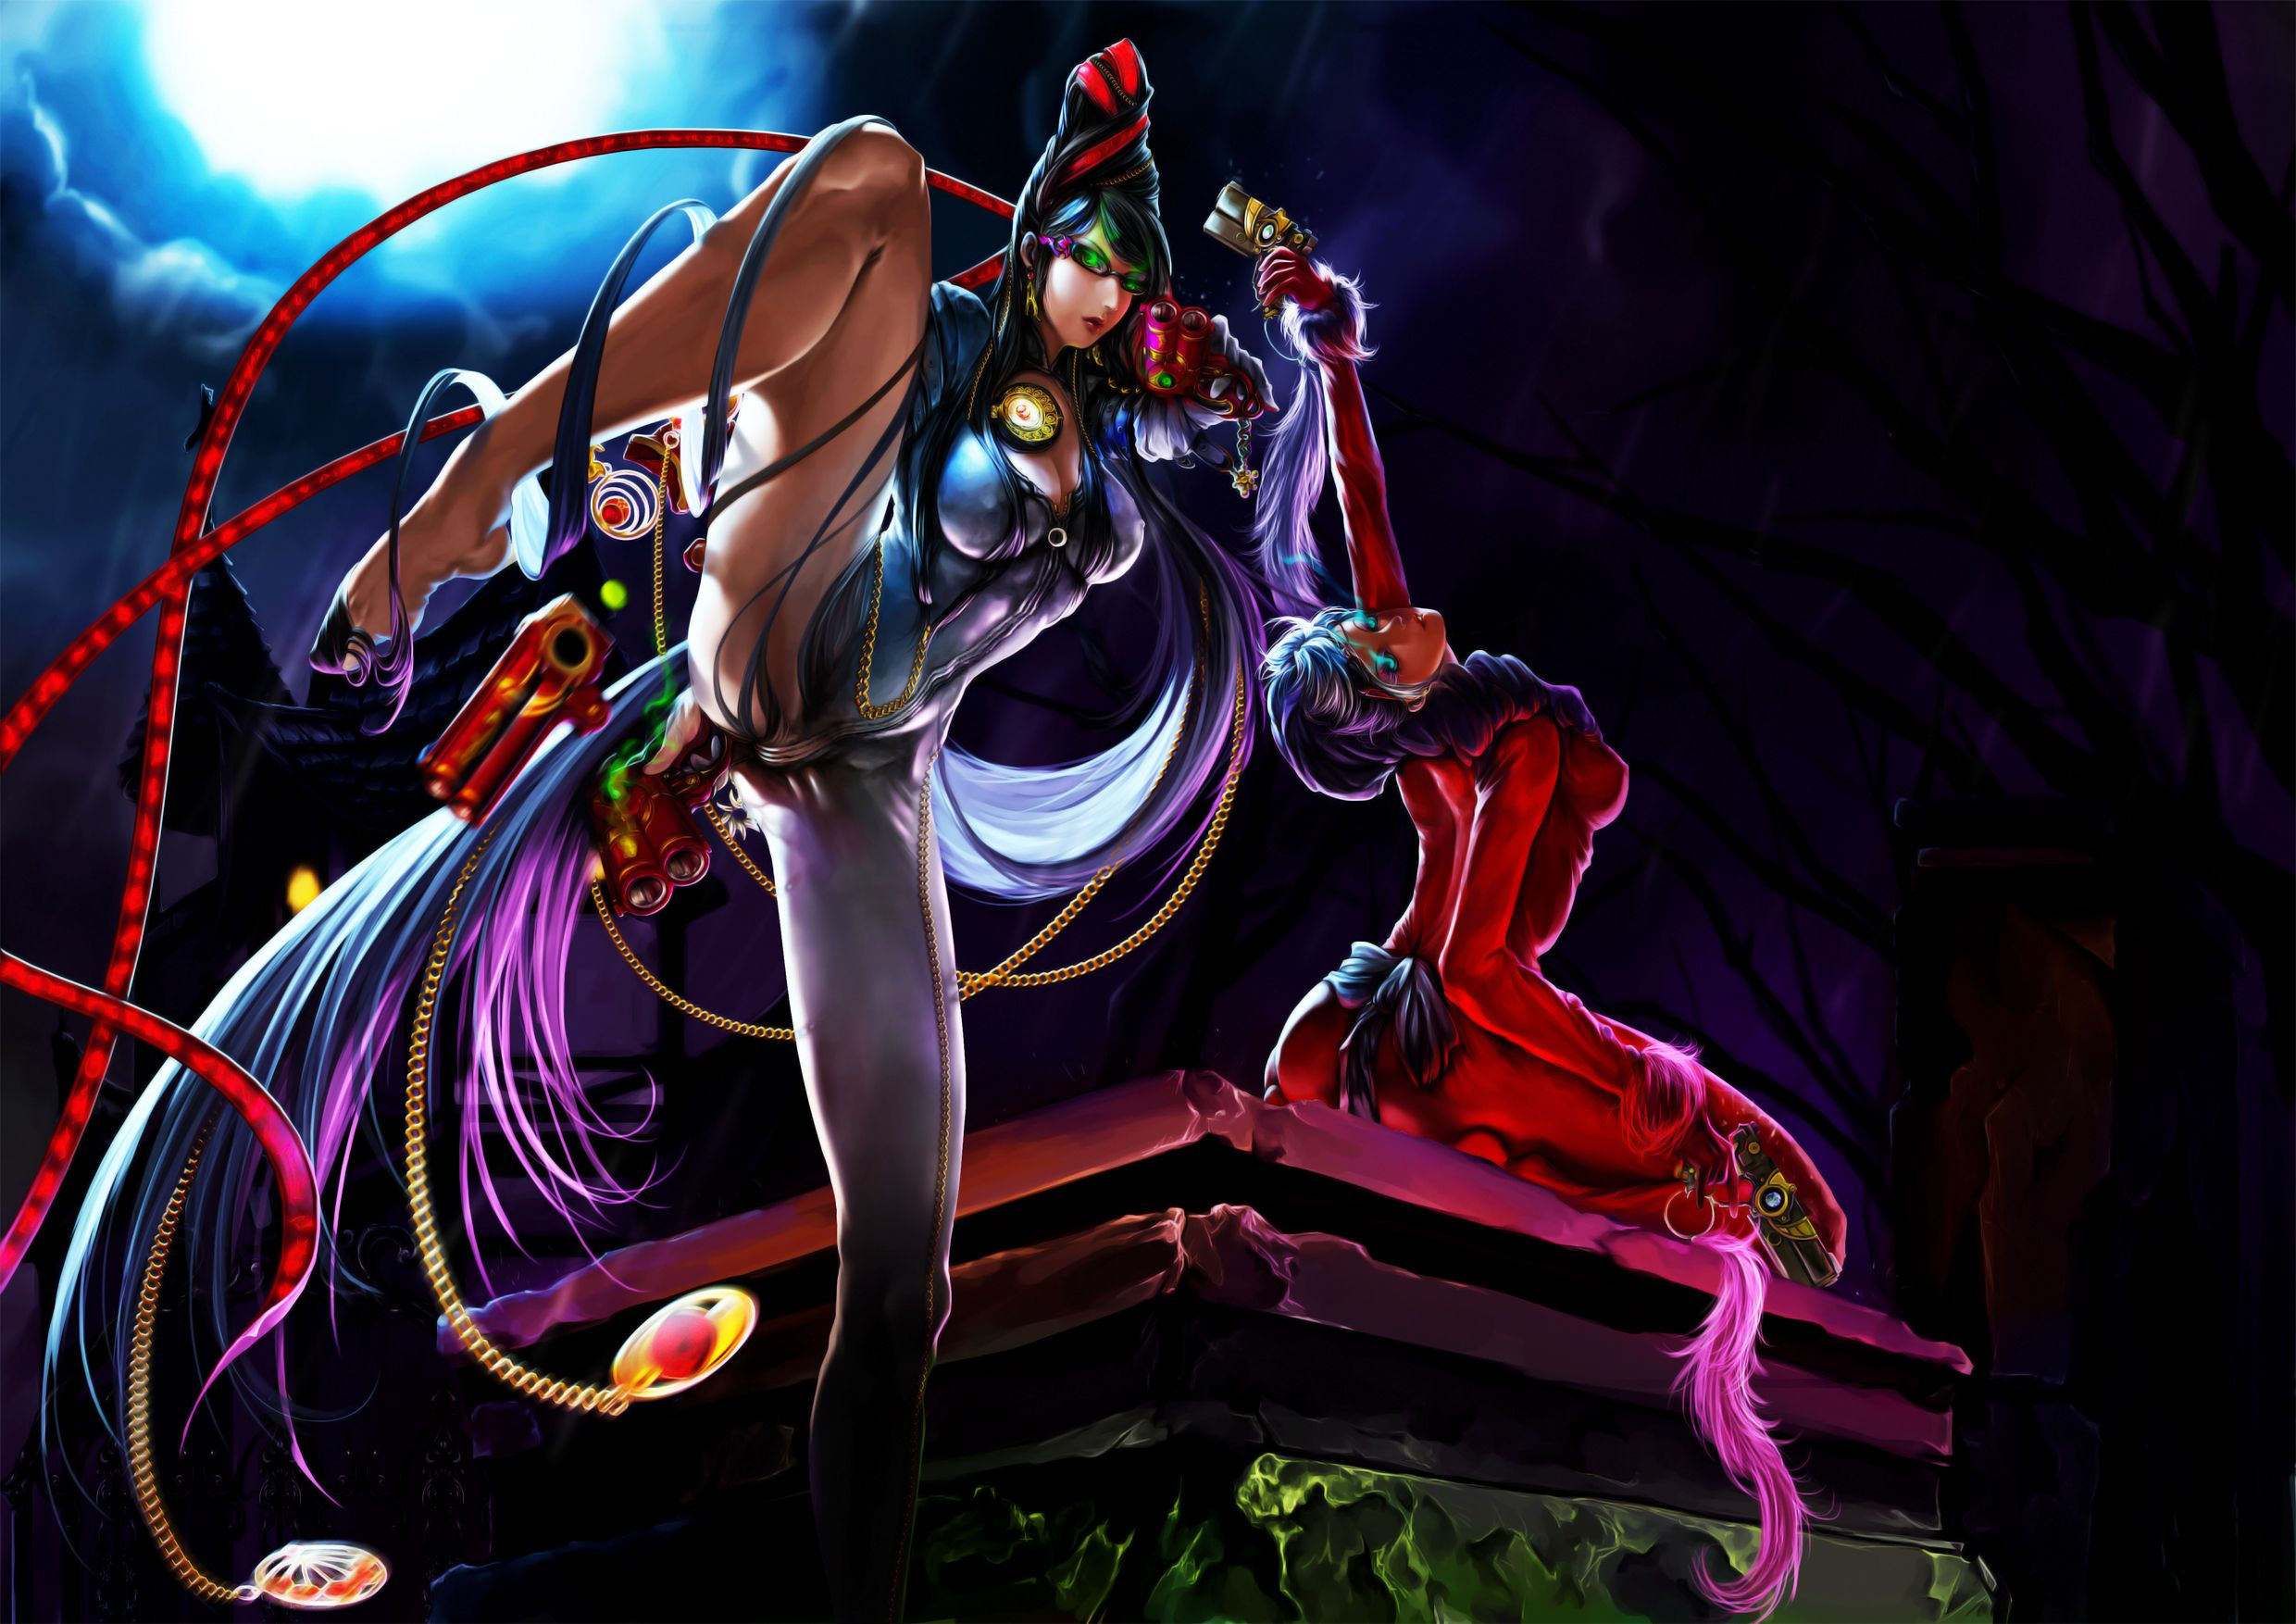 Bayonetta Wallpaper 1080p Wallpapersafari Epic Car